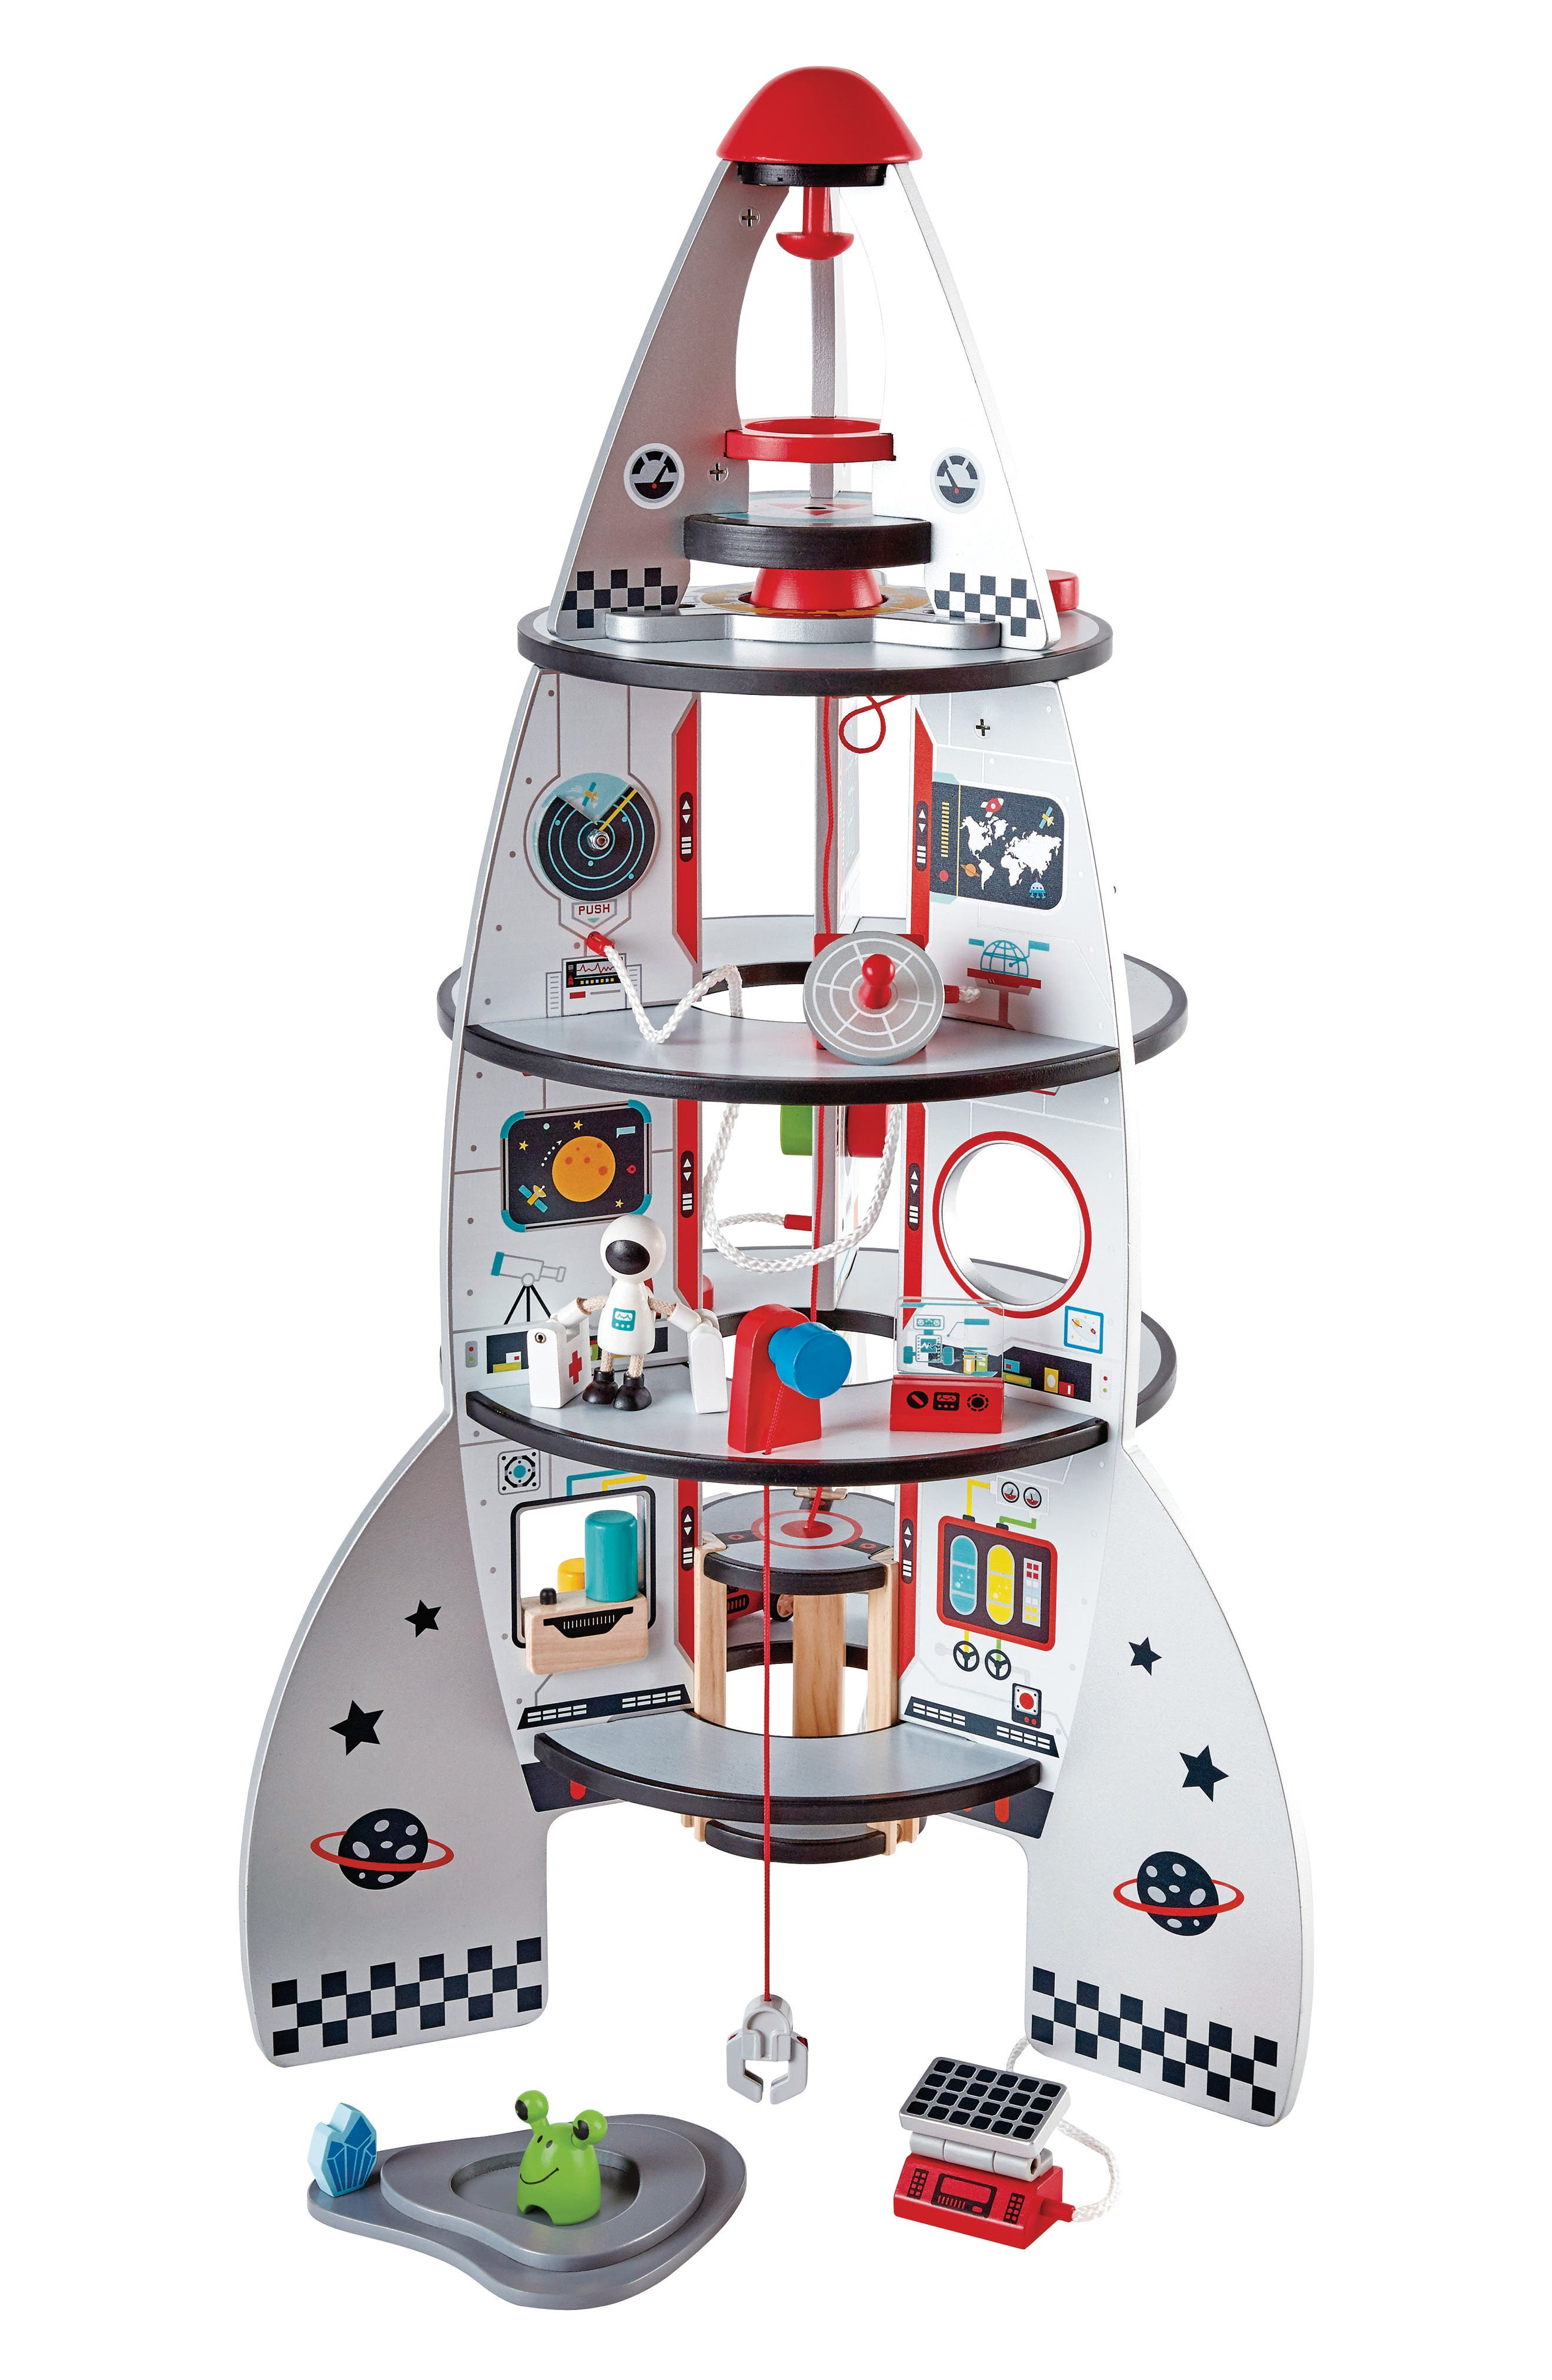 Playscapes Four-Stage Rocket Ship,                             Main thumbnail 1, color,                             040